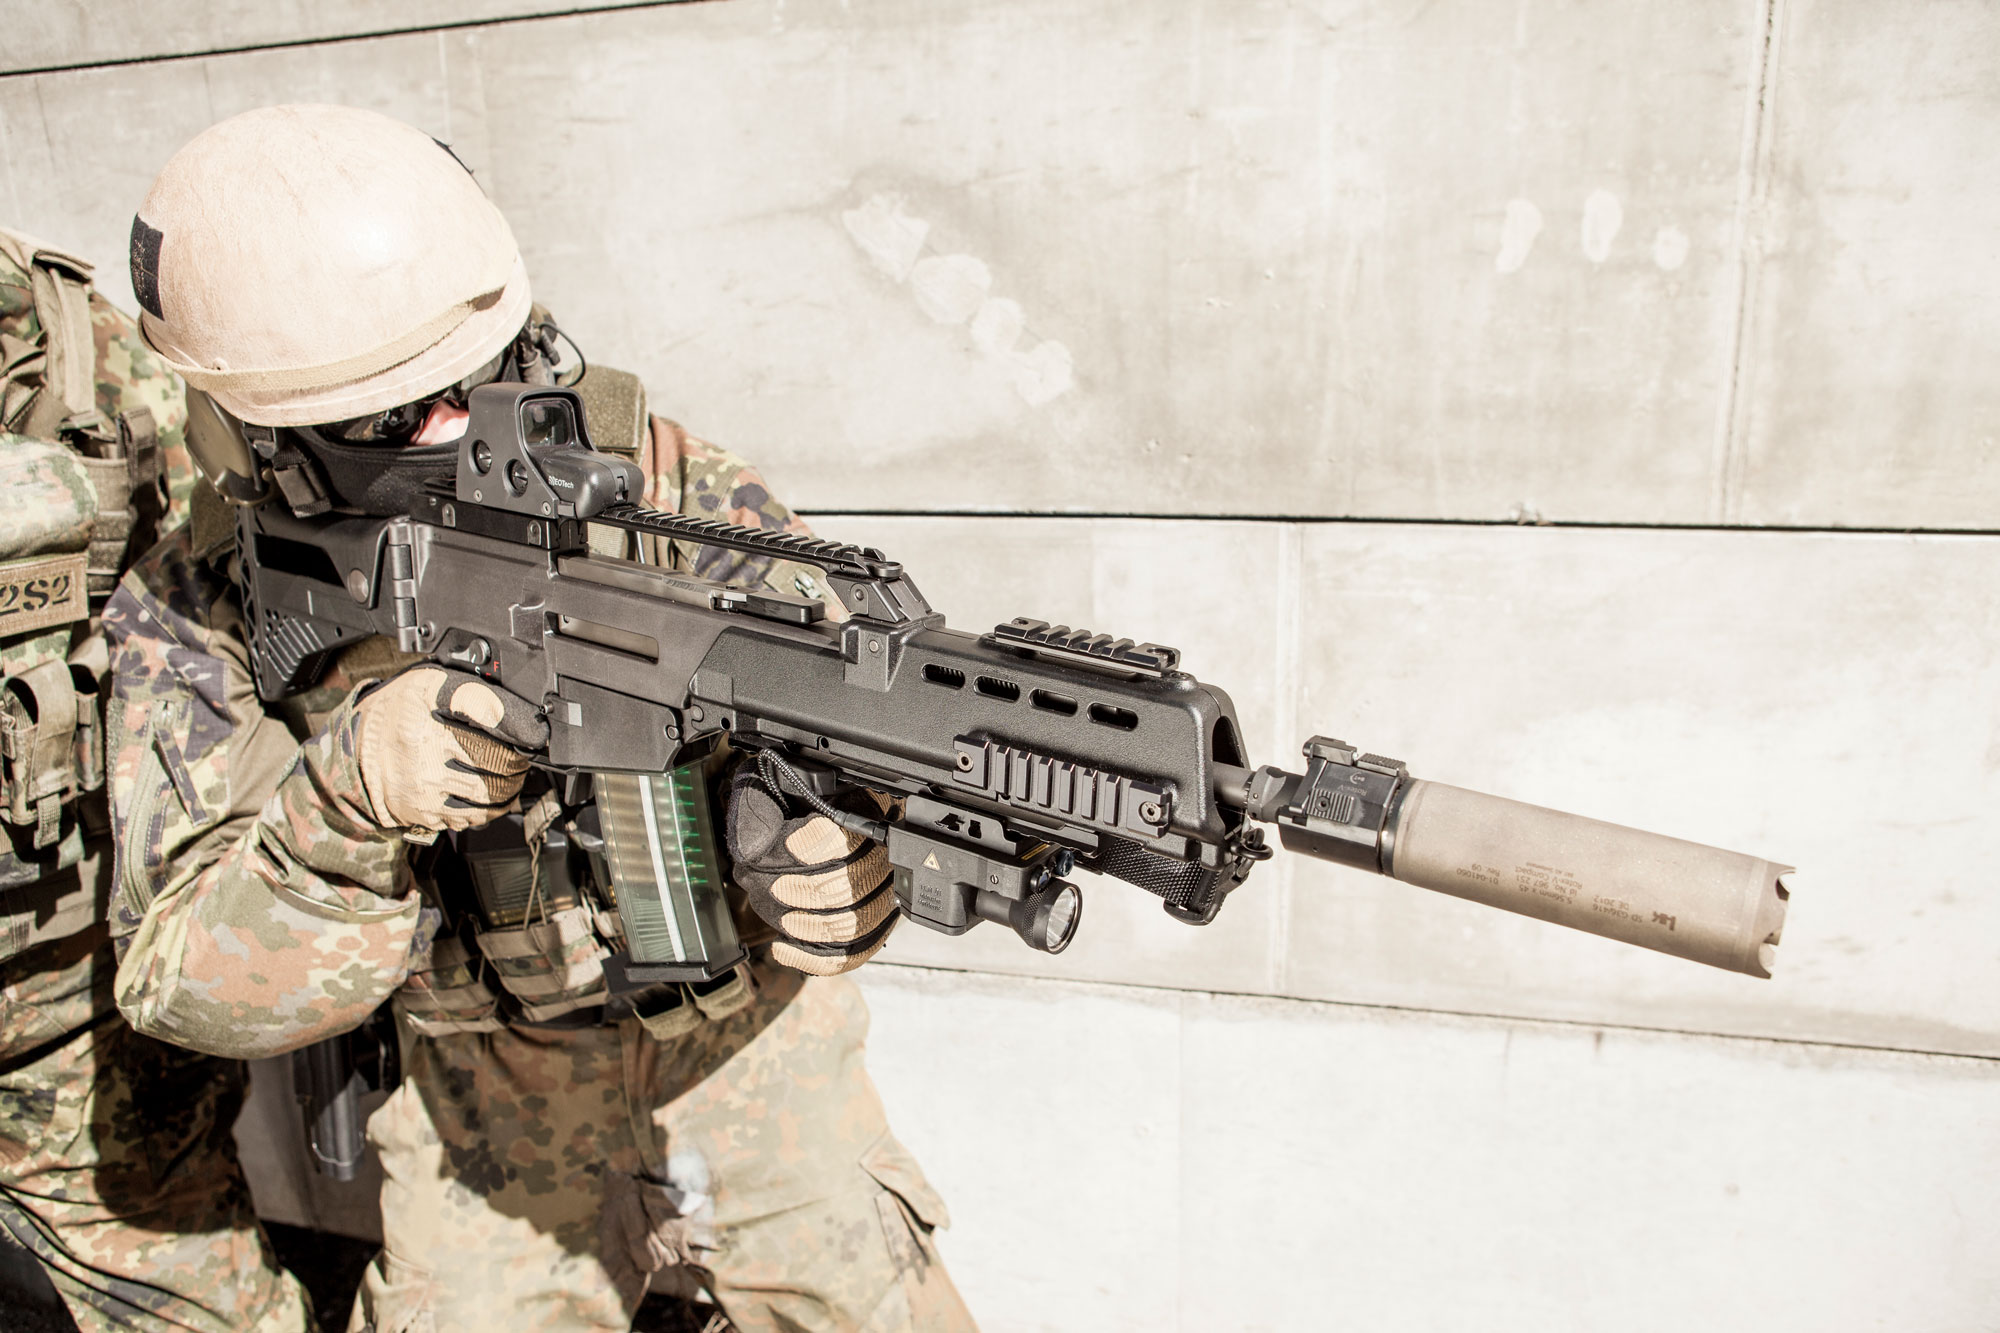 Heckler & Koch G36 assault rifle